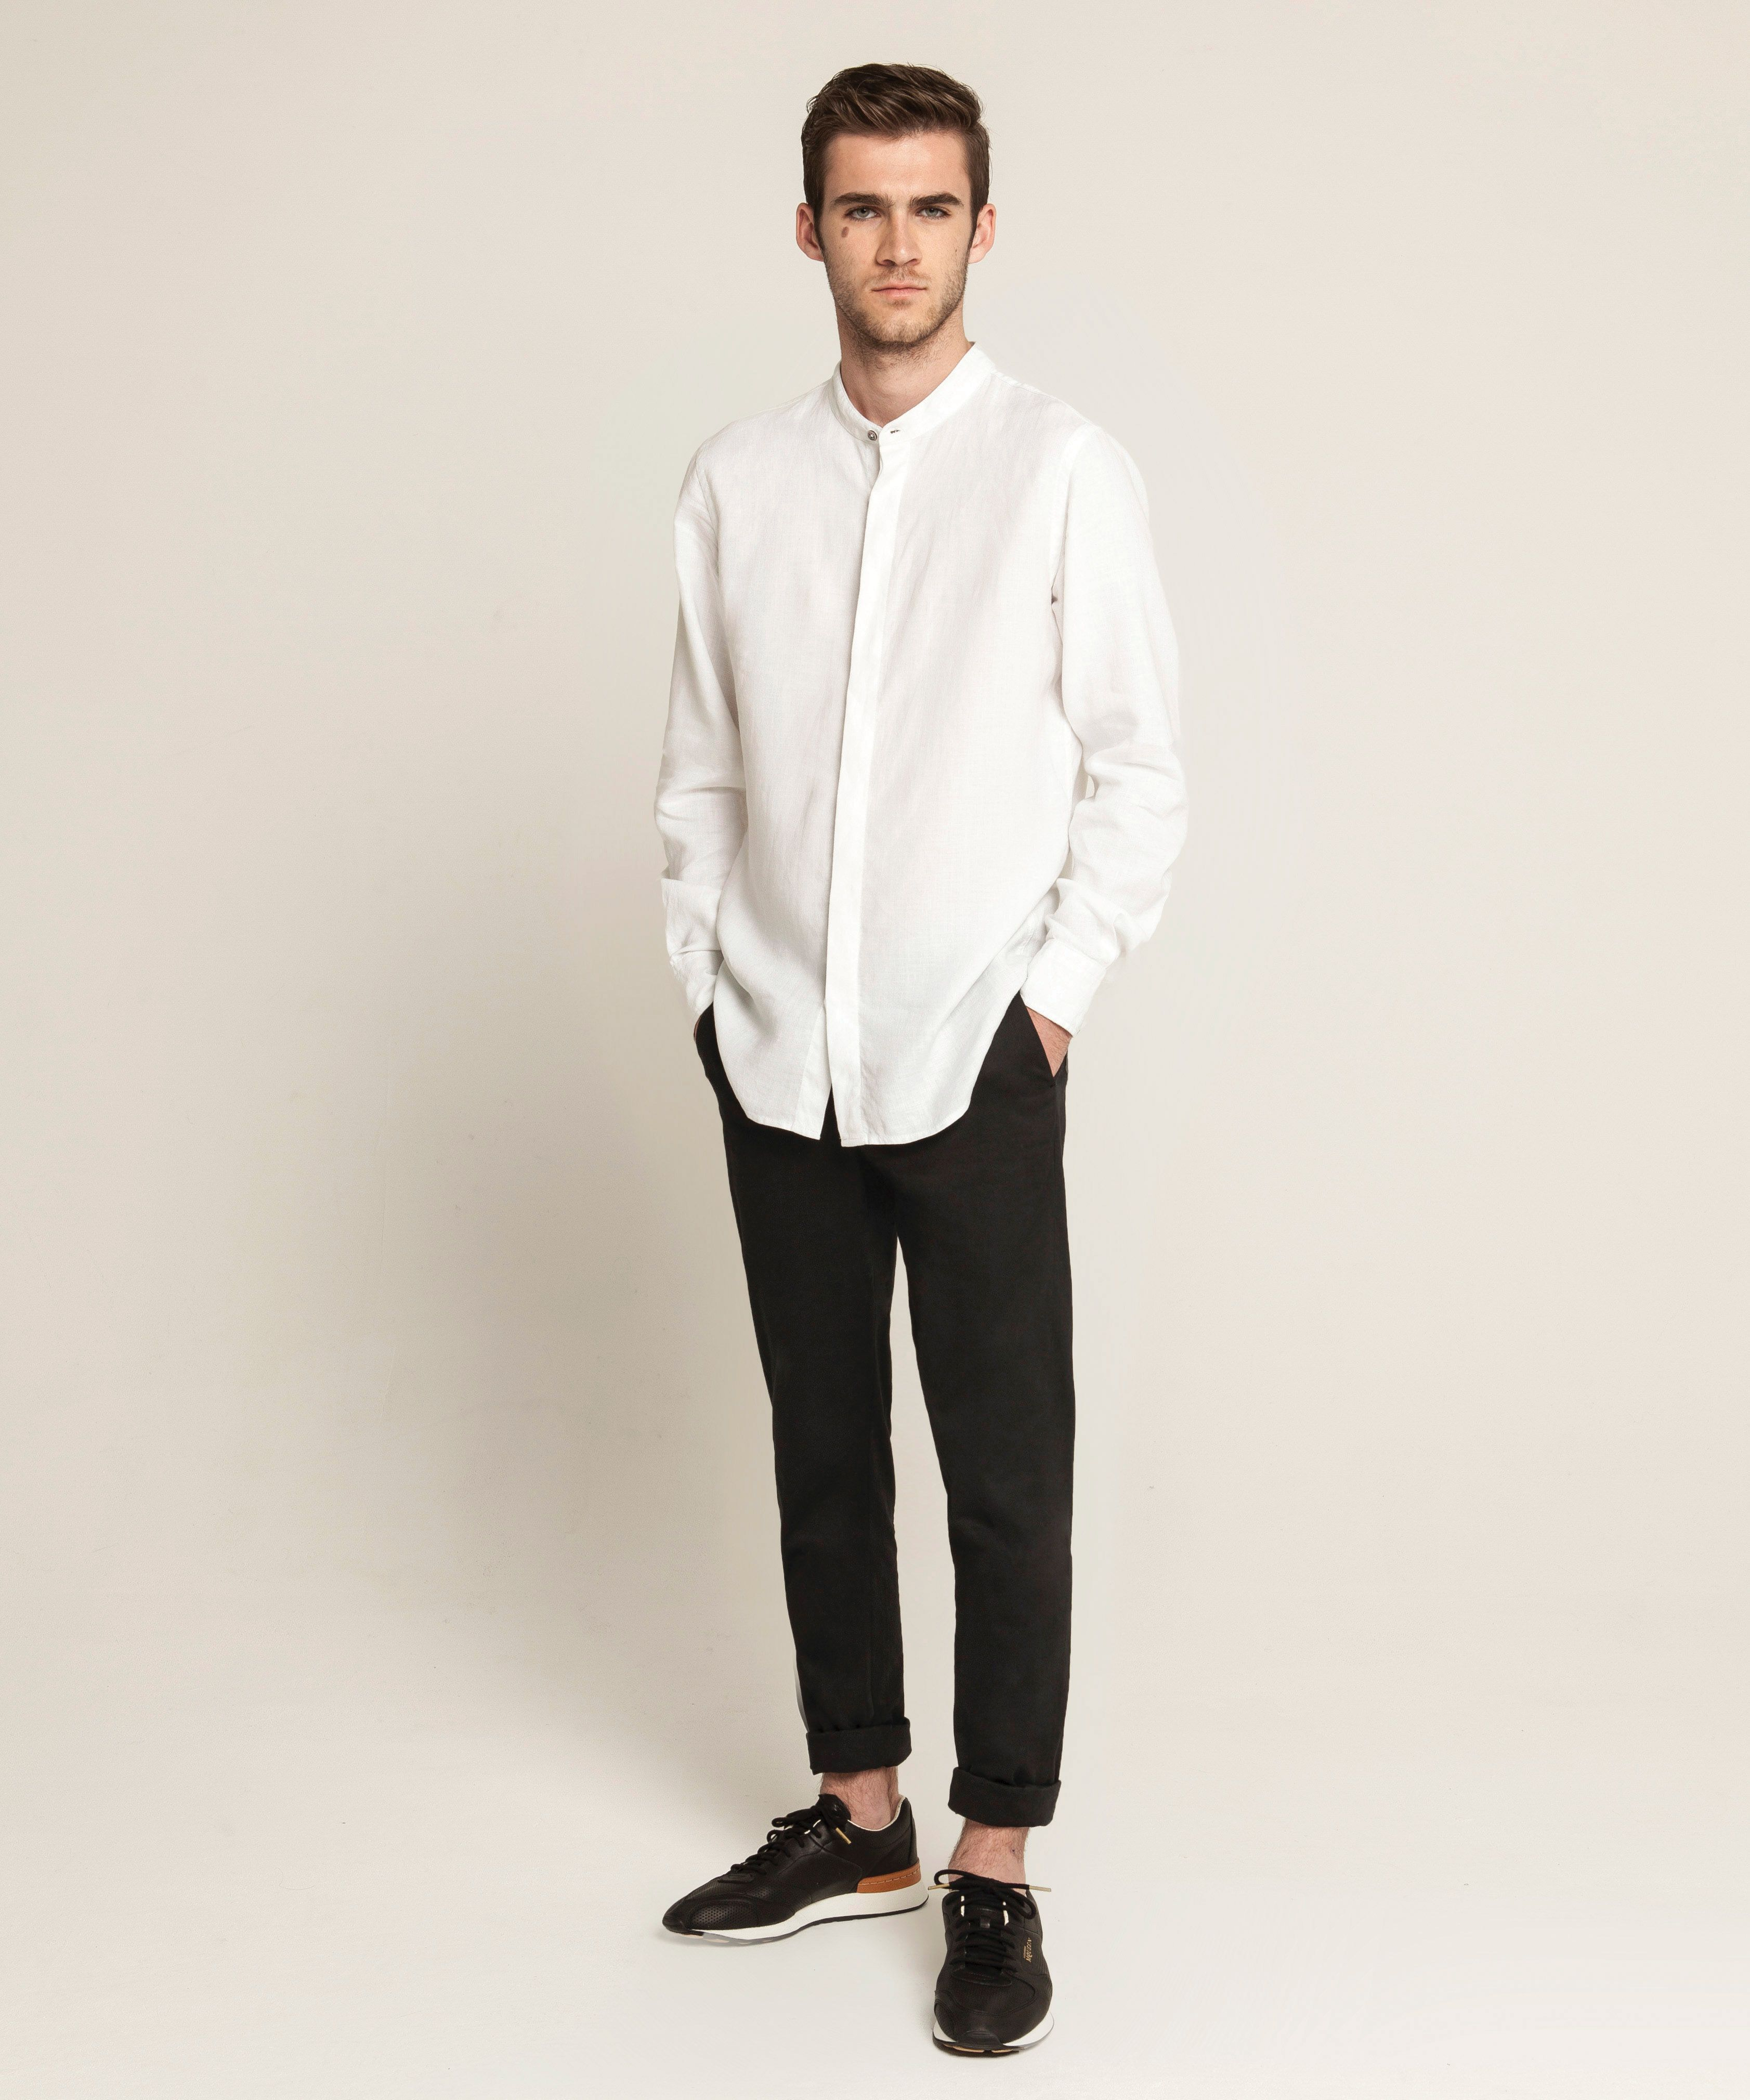 e003b6120725c3 Linen Band Collar Shirt - White, Tailored Chino - Black | Shirts ...